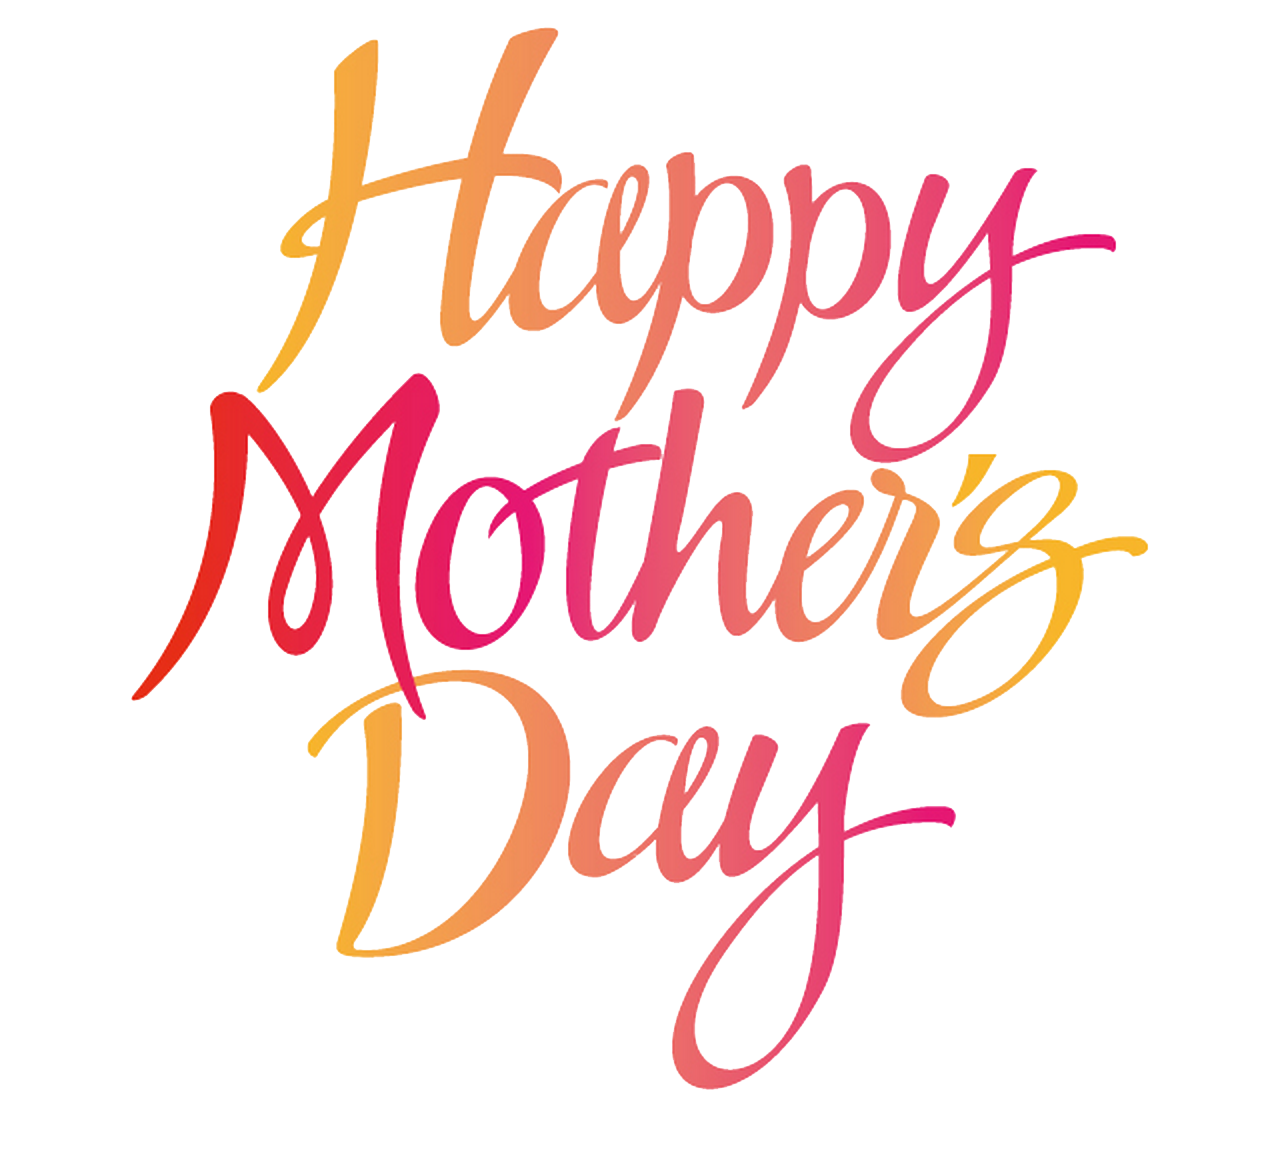 Happy Mothers Day 2017 Png image #41082